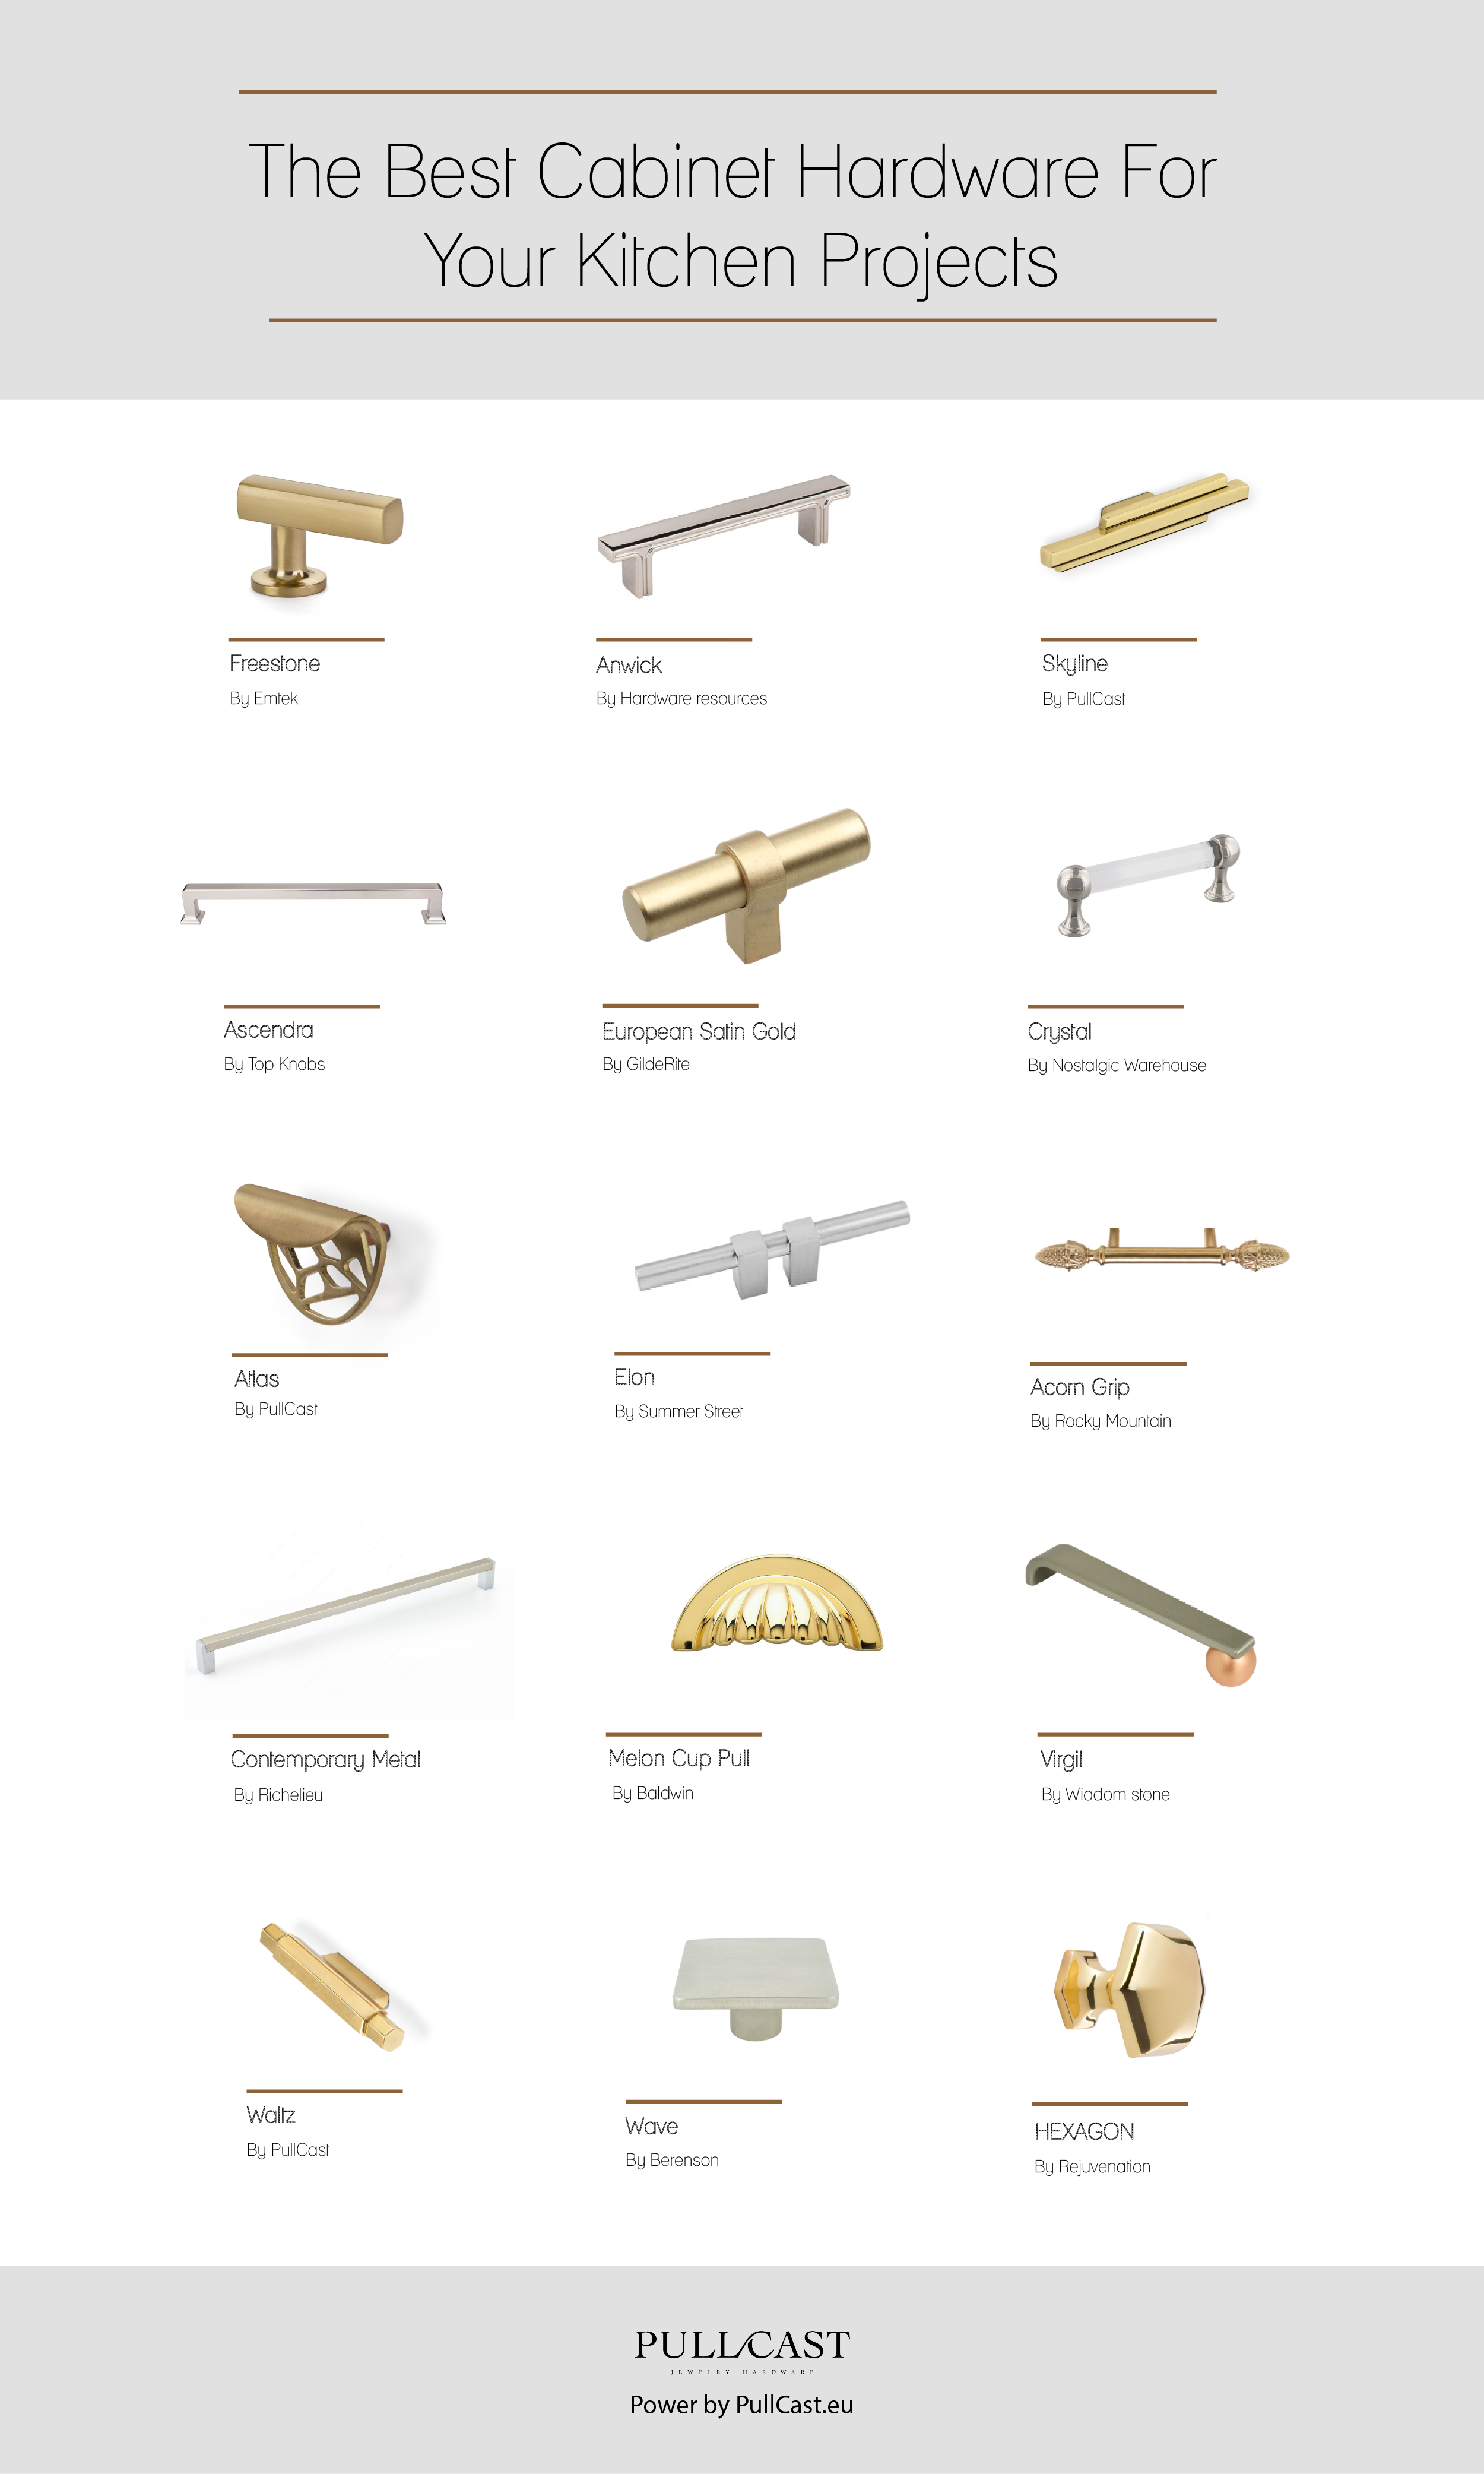 The Best Kitchen Cabinet Hardware For Your Projects